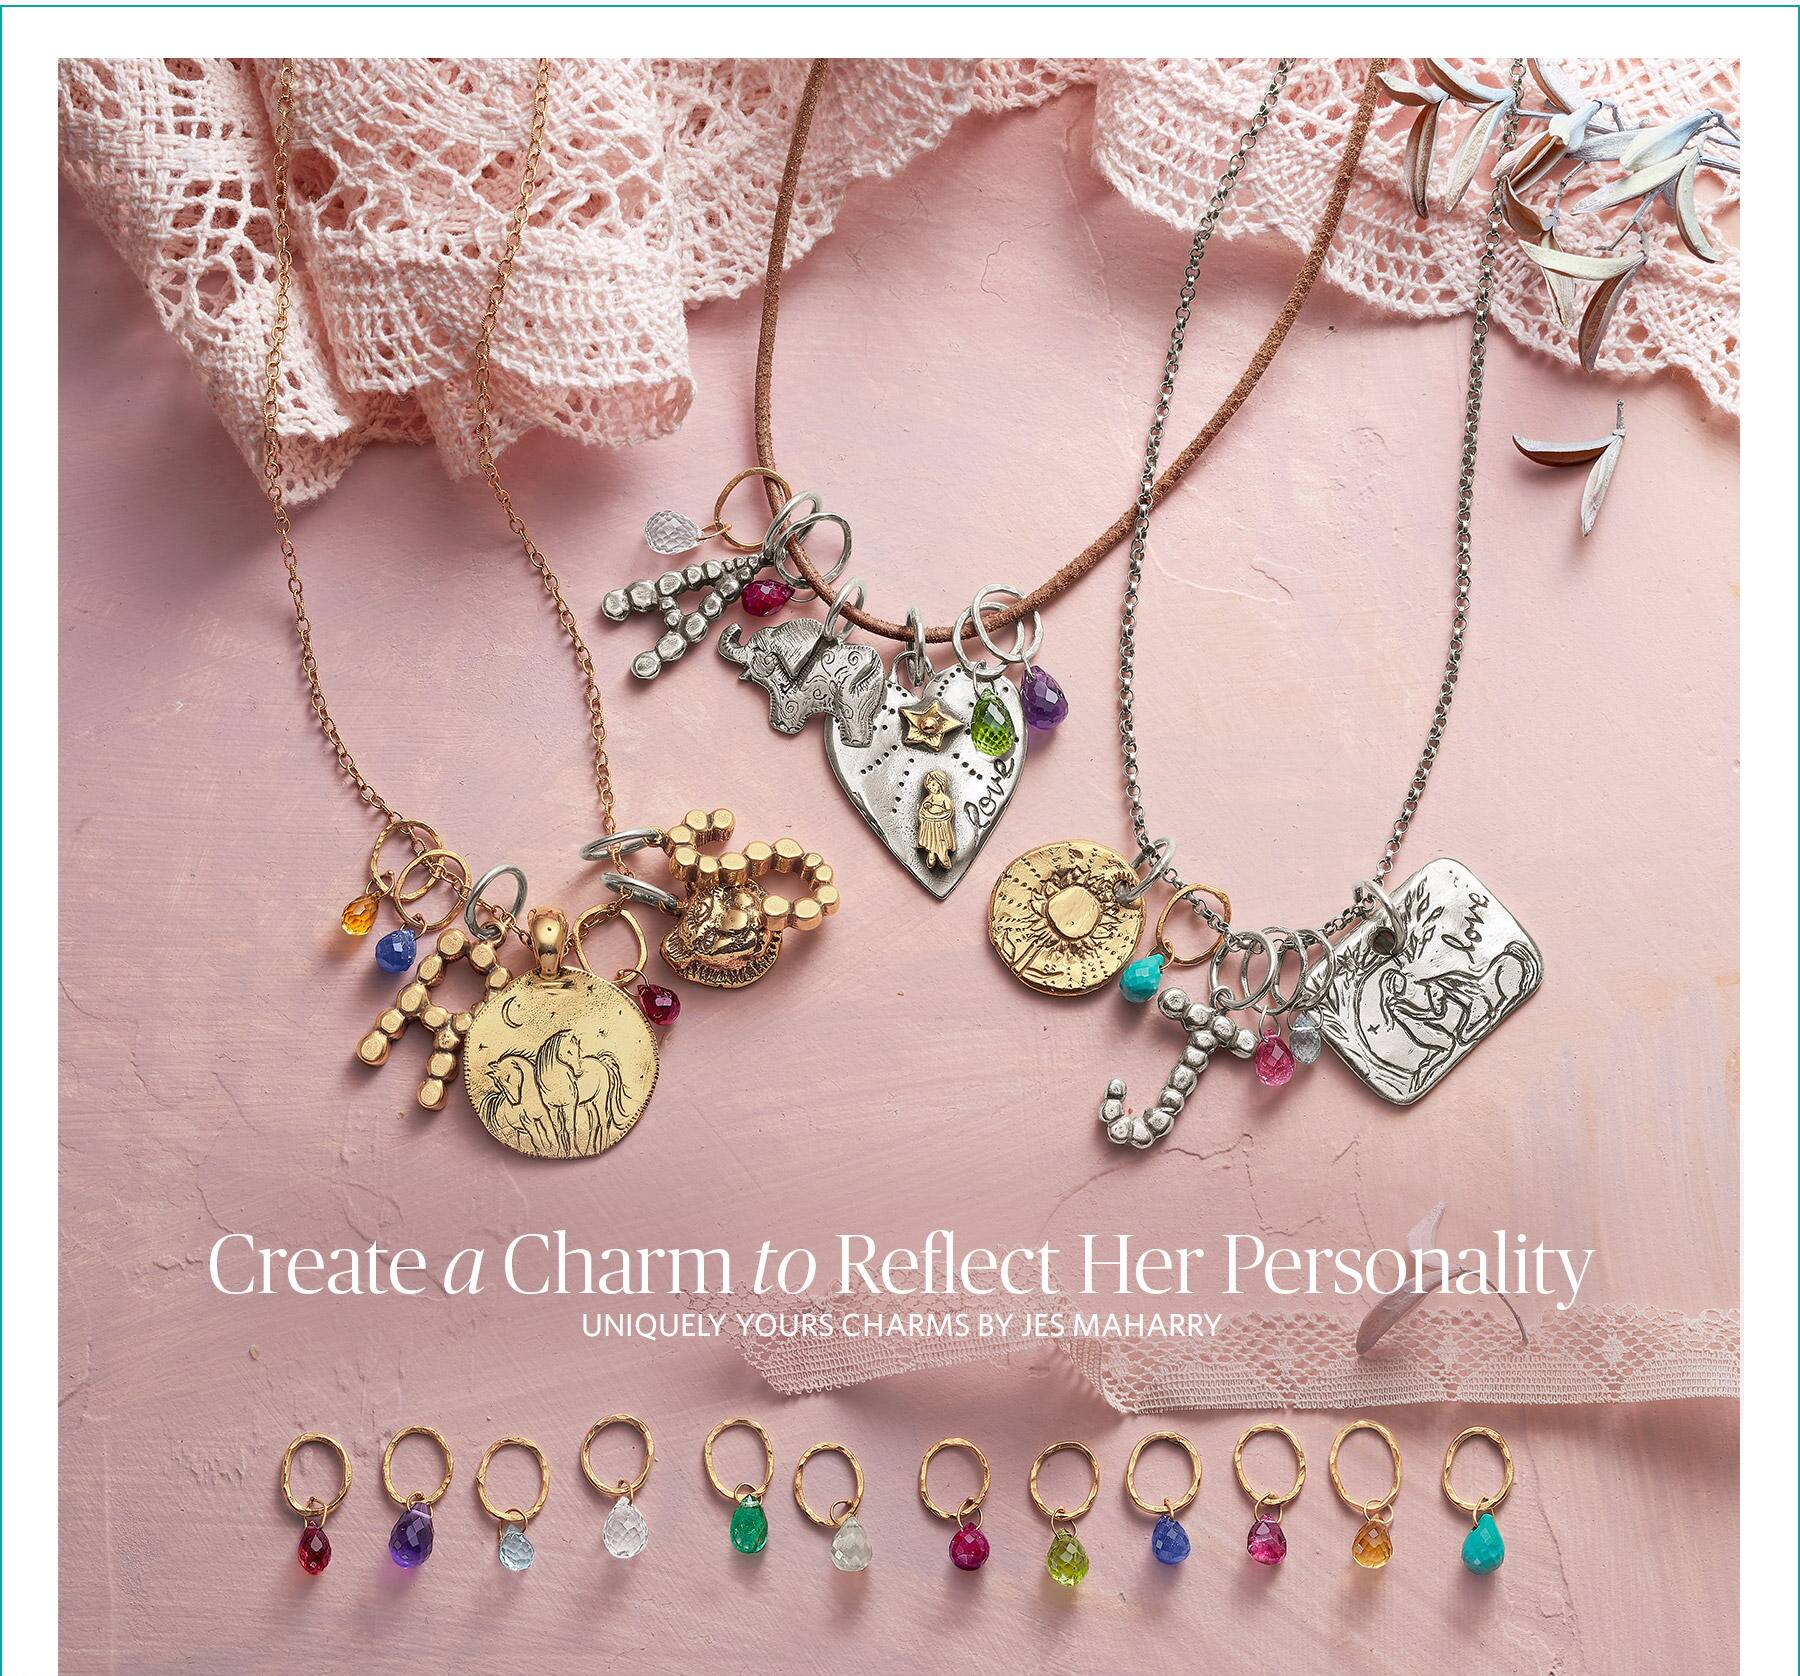 Charms by Jes MaHarry